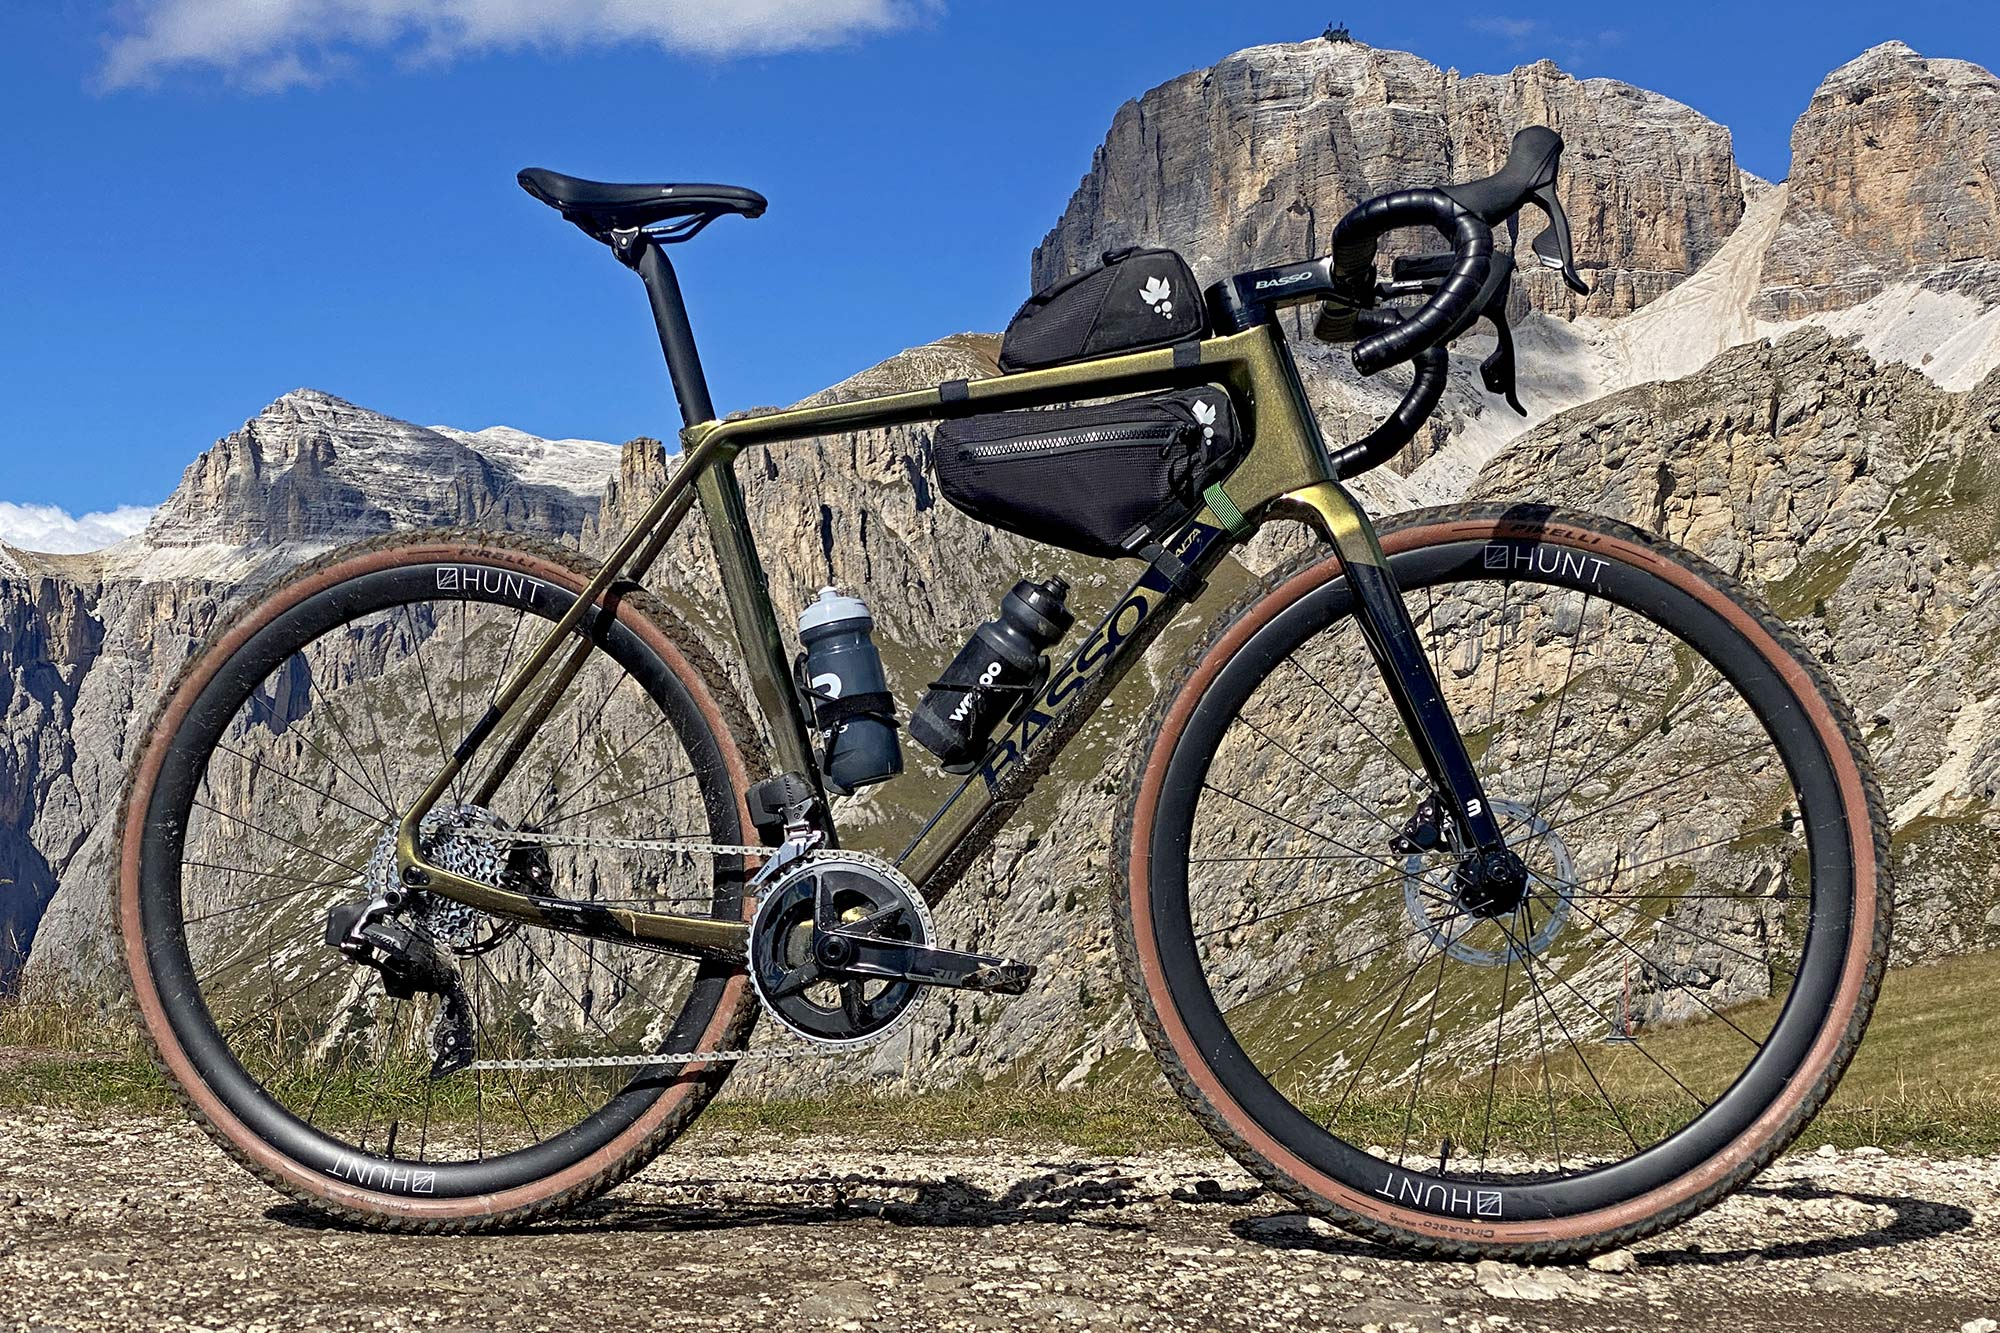 2022 Basso Palta II carbon gravel bike review made-in-Italy, complete Dolomites